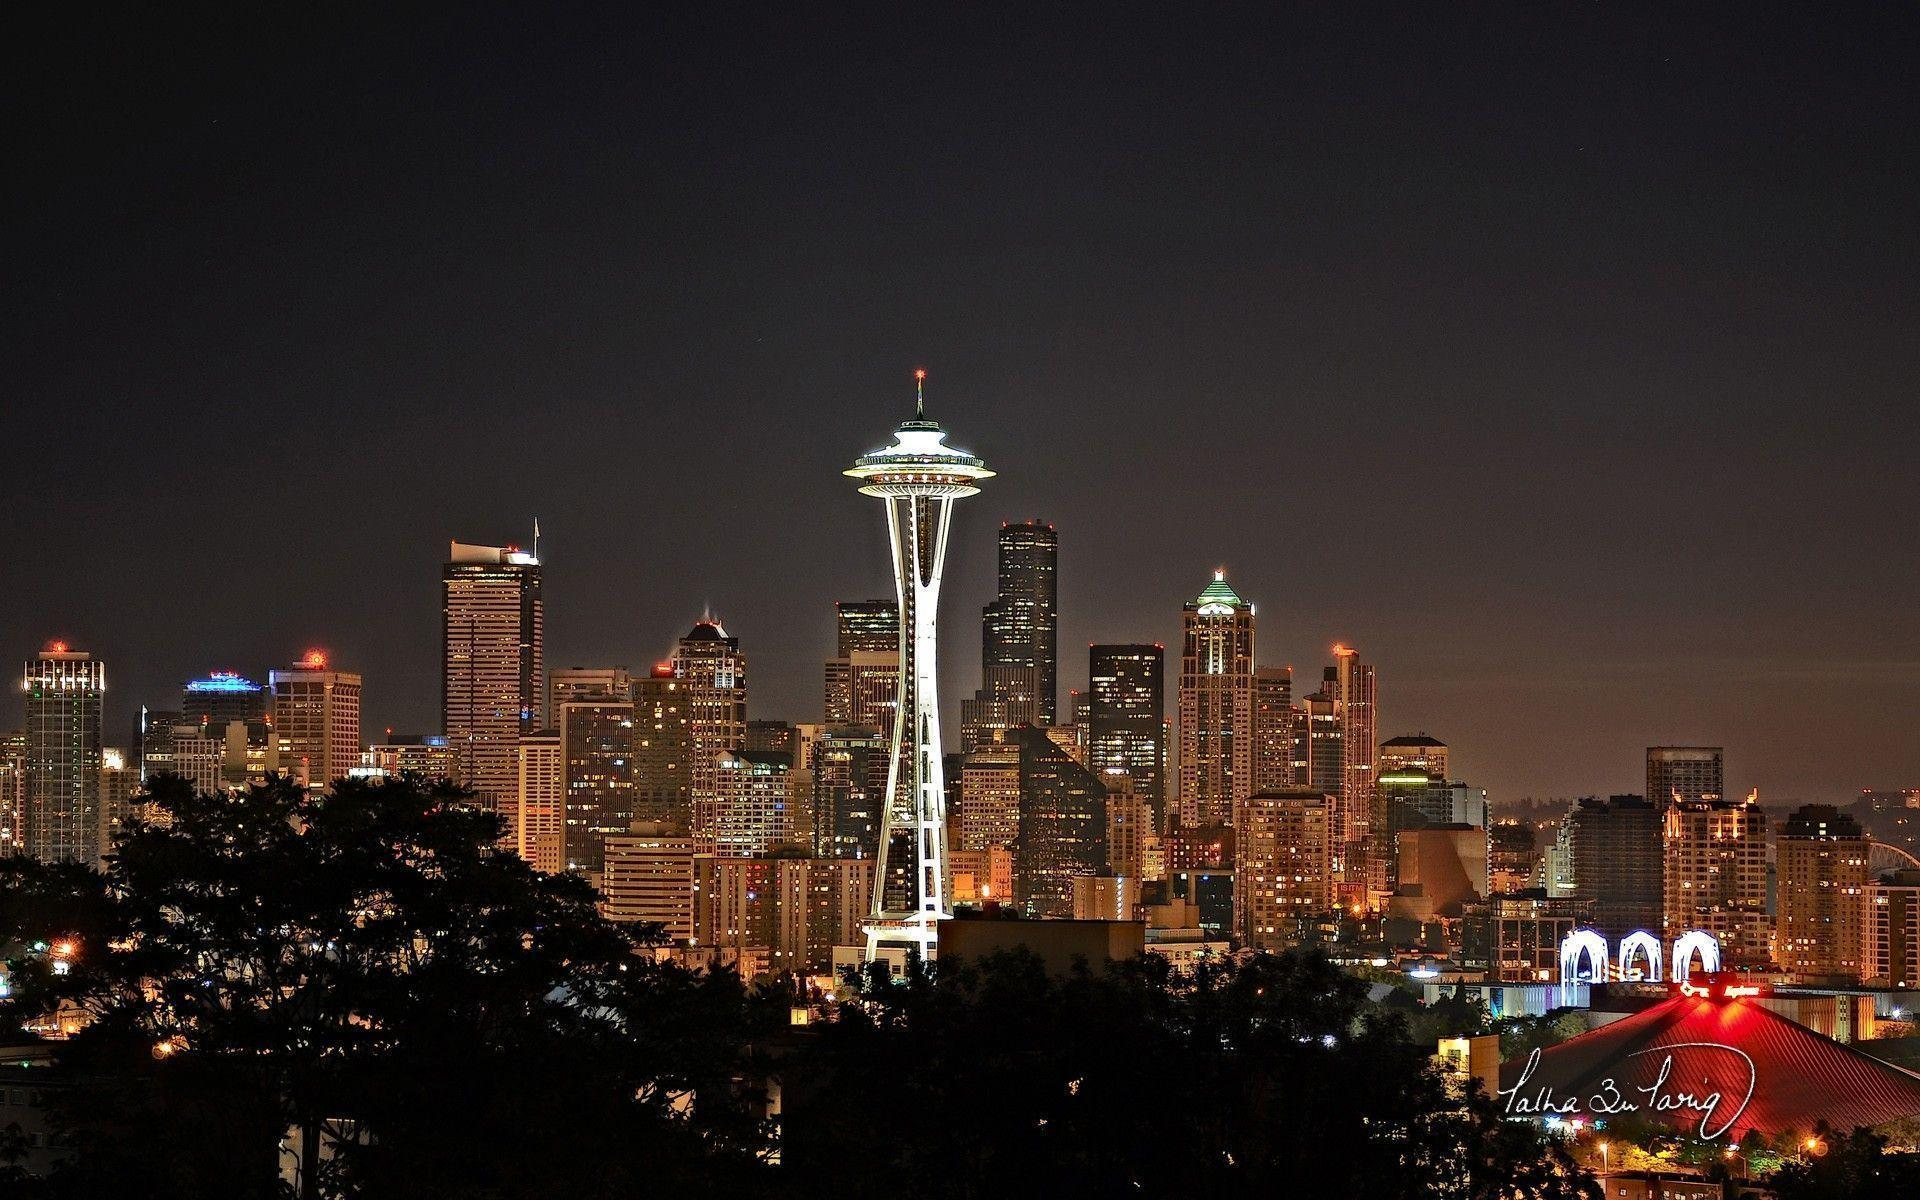 Hd Wallpapers Space Needle Seattle Washington 2550 X 1600 745 Kb ...